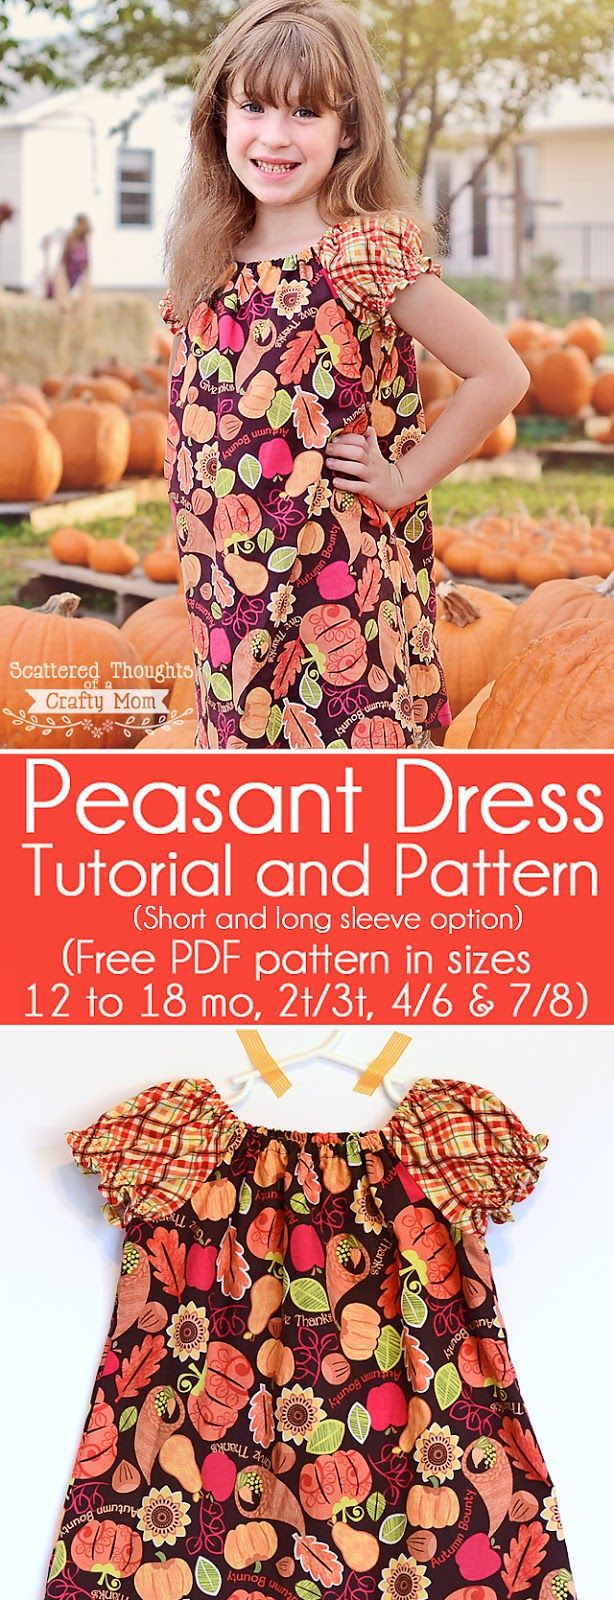 Use this tutorial and free printable pdf pattern to learn how to make a simple peasant dress.  (Printable pattern available in sizes 12 months to 8.) (long and short sleeves.))